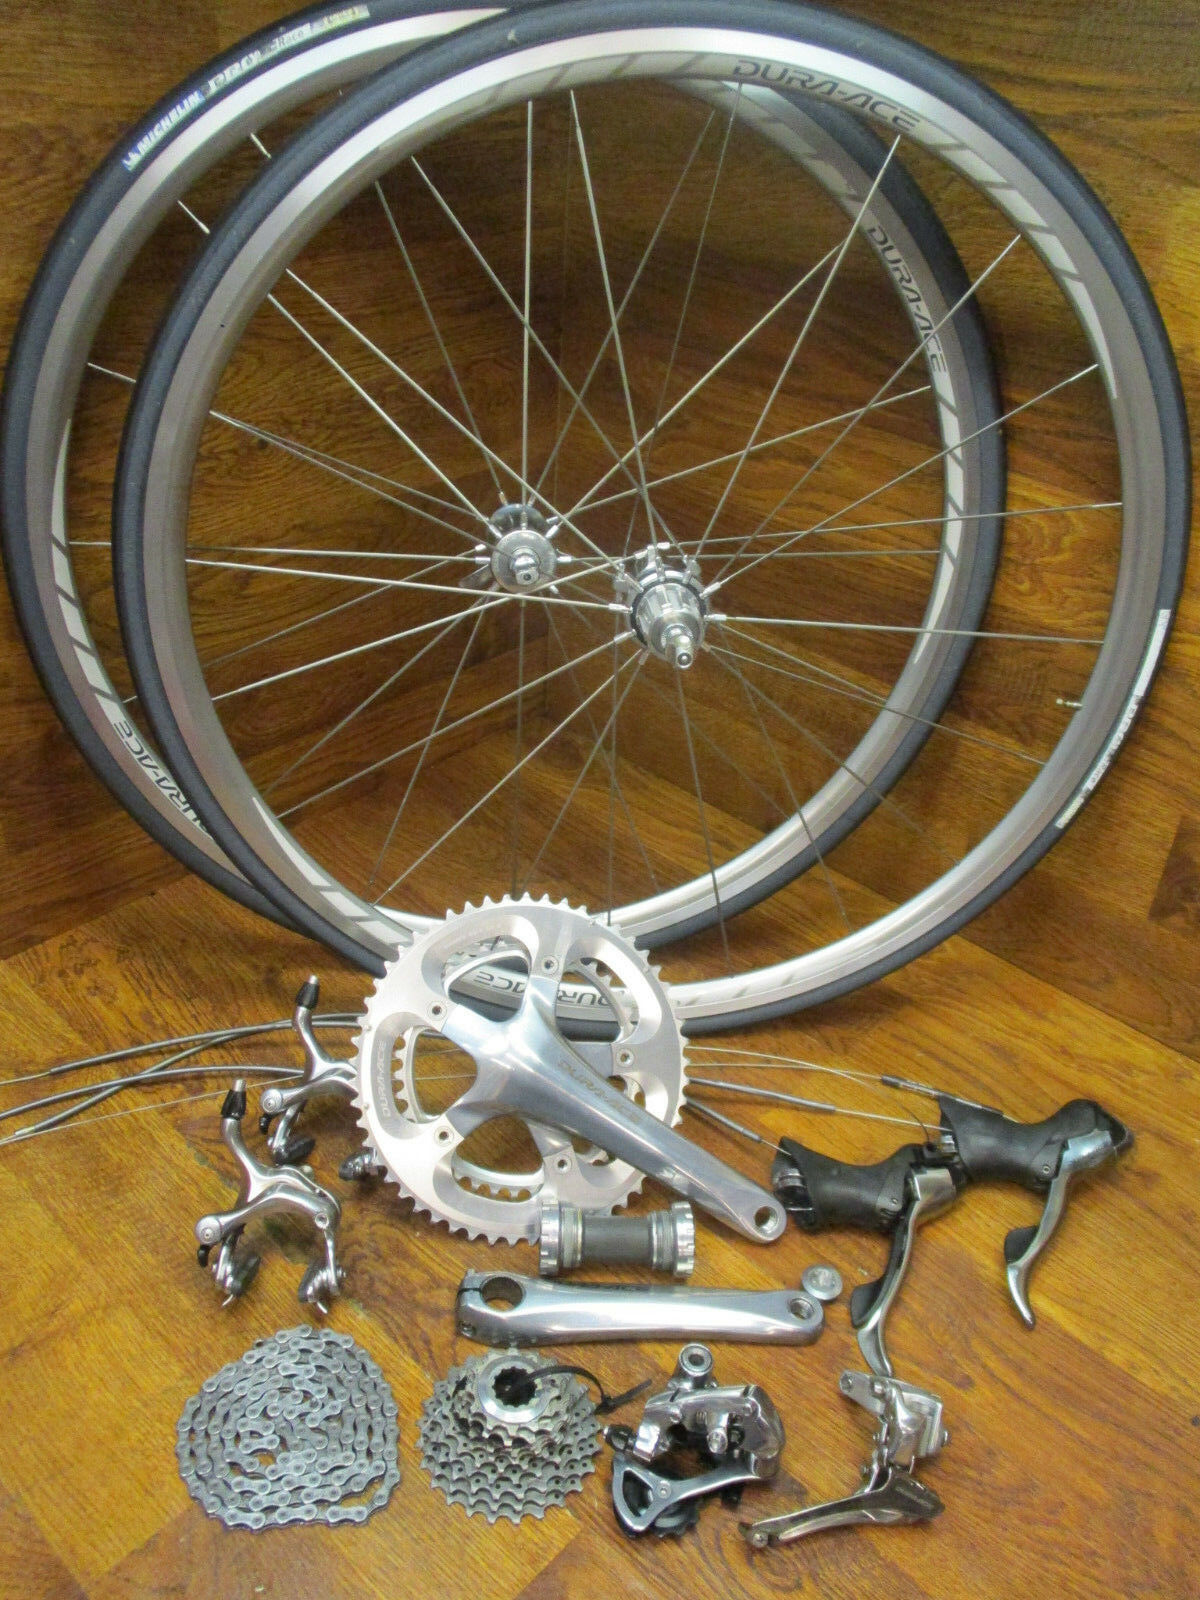 SHIMANO DURA ACE 2x10 SPEED 175L 7800 GROUP GRUPPO COMPLETE BUILD KIT WH-7800